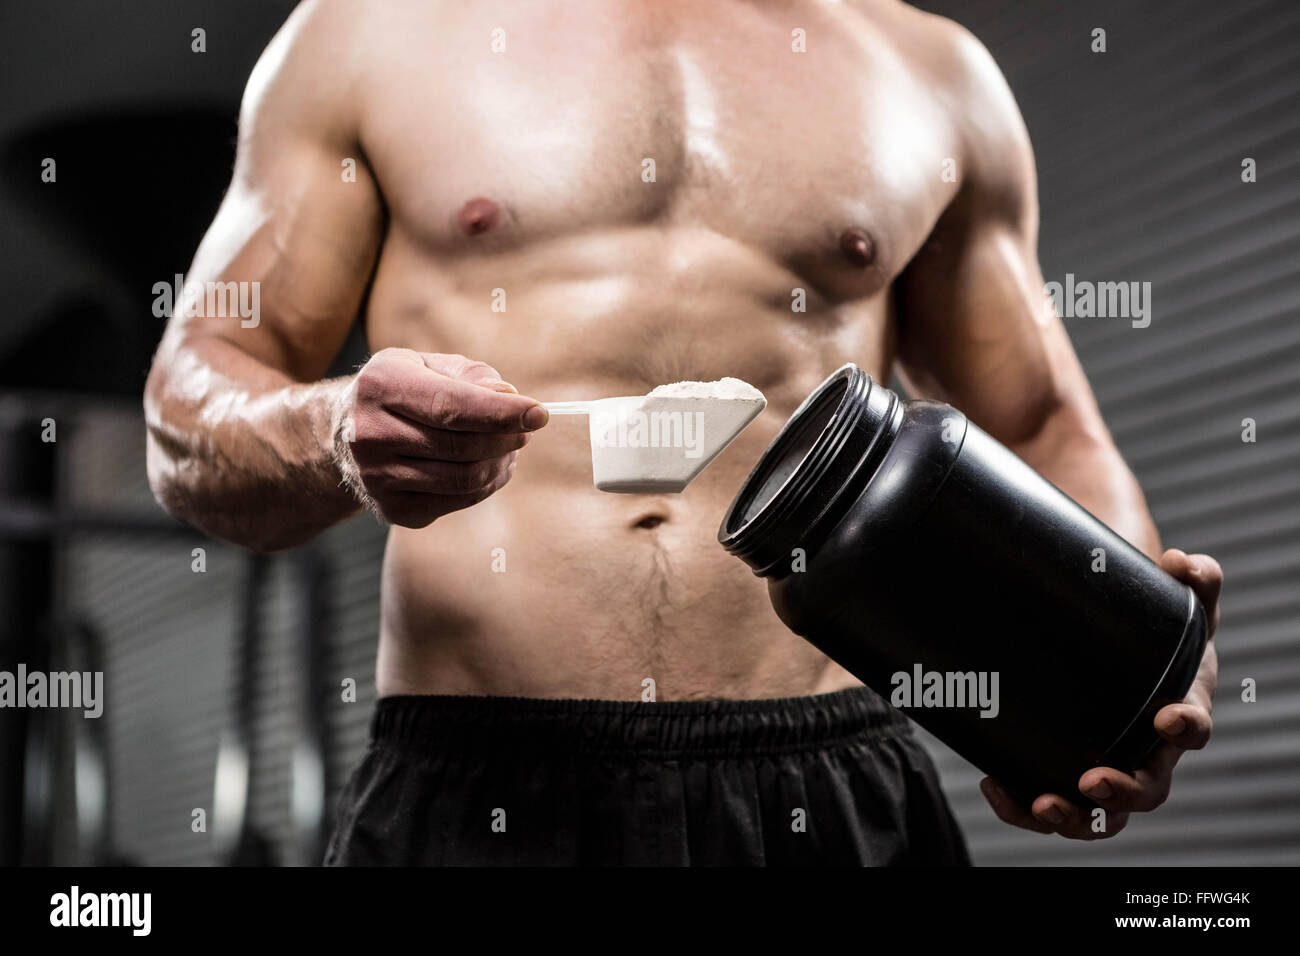 Mid section of shirtless man taking proteins from can - Stock Image